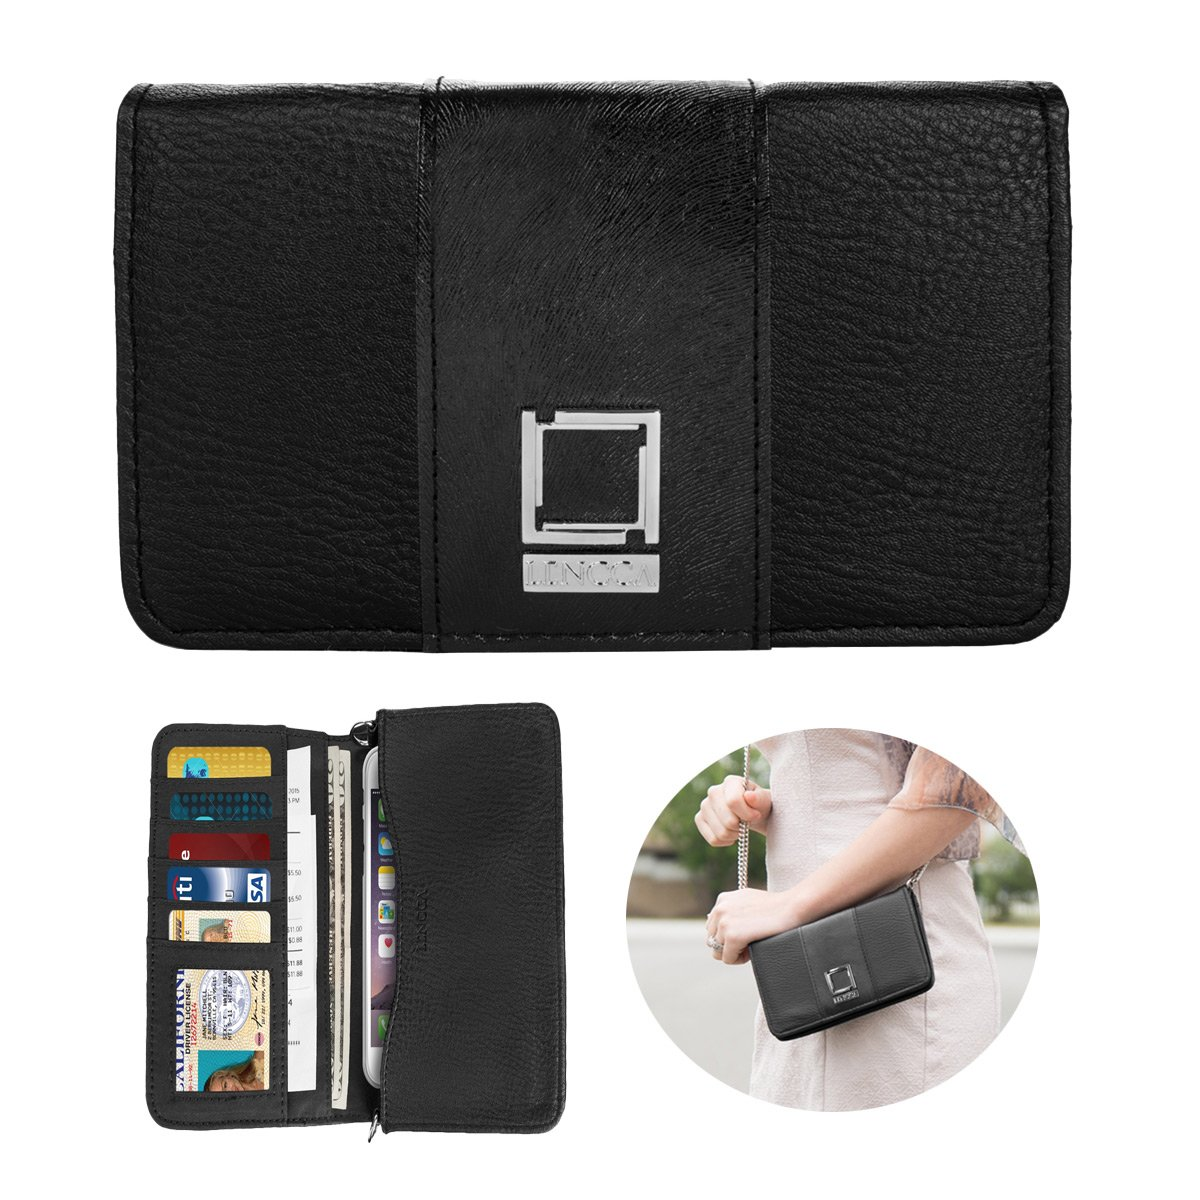 BlackBlack Roxie Womens Leather Crossbody Cell Phone Purse Clutch Wallet Handbag Organizer for iPhone Xs Max XS XR X 8 7 Plus 6s 6 5 SE Galaxy S9 S8 Plus S7 Note9 Note8